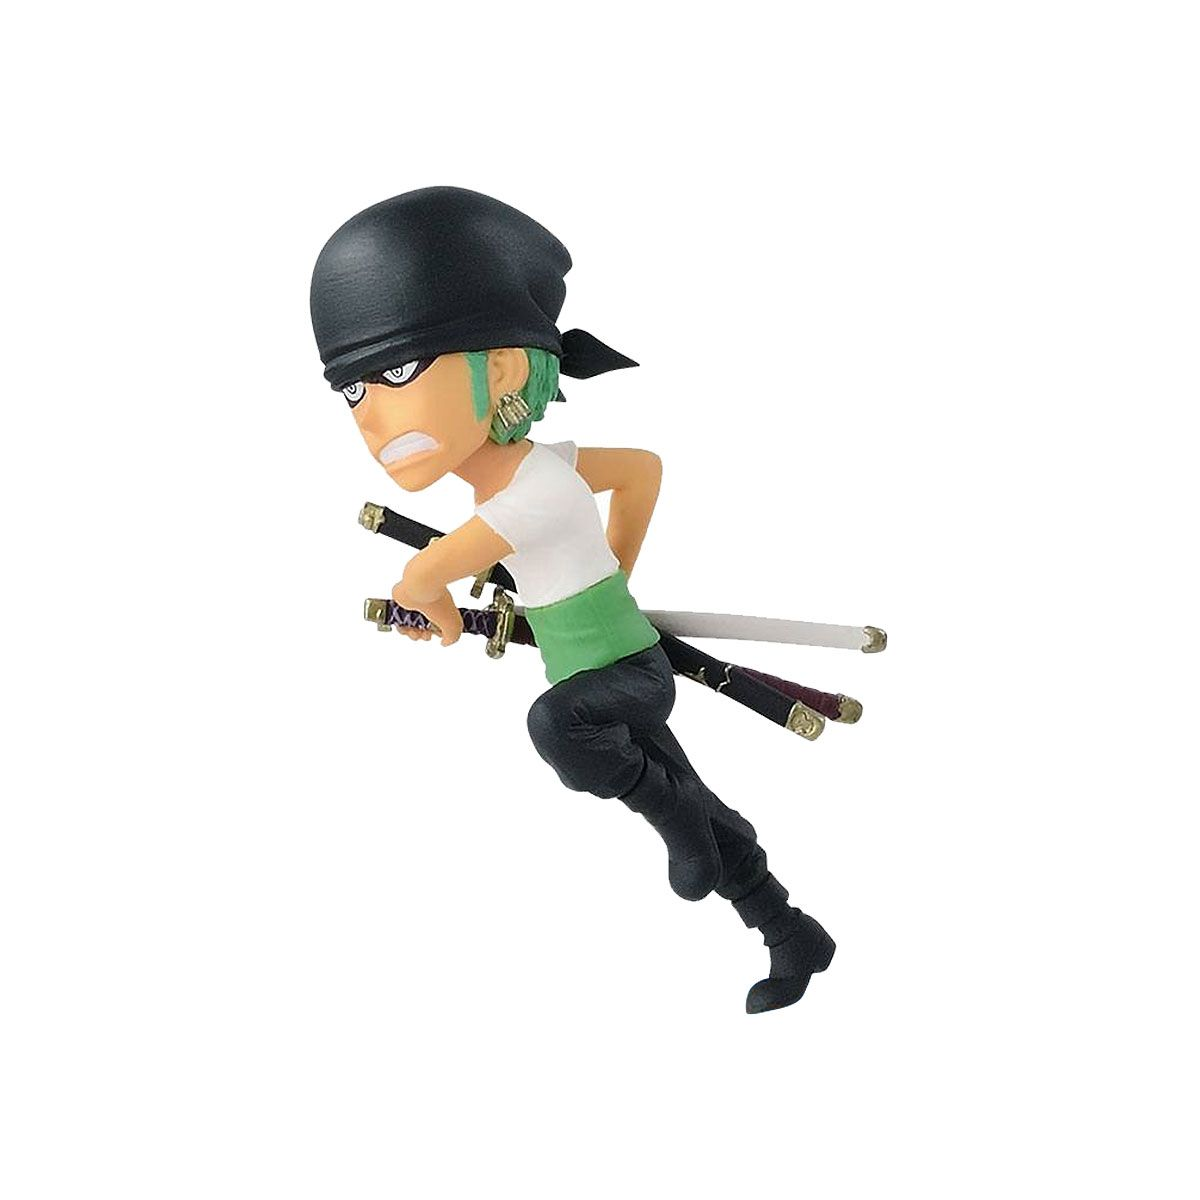 One Piece WCF - Roronoa Zoro - Figure History Relay 20th Vol,1- Banpresto